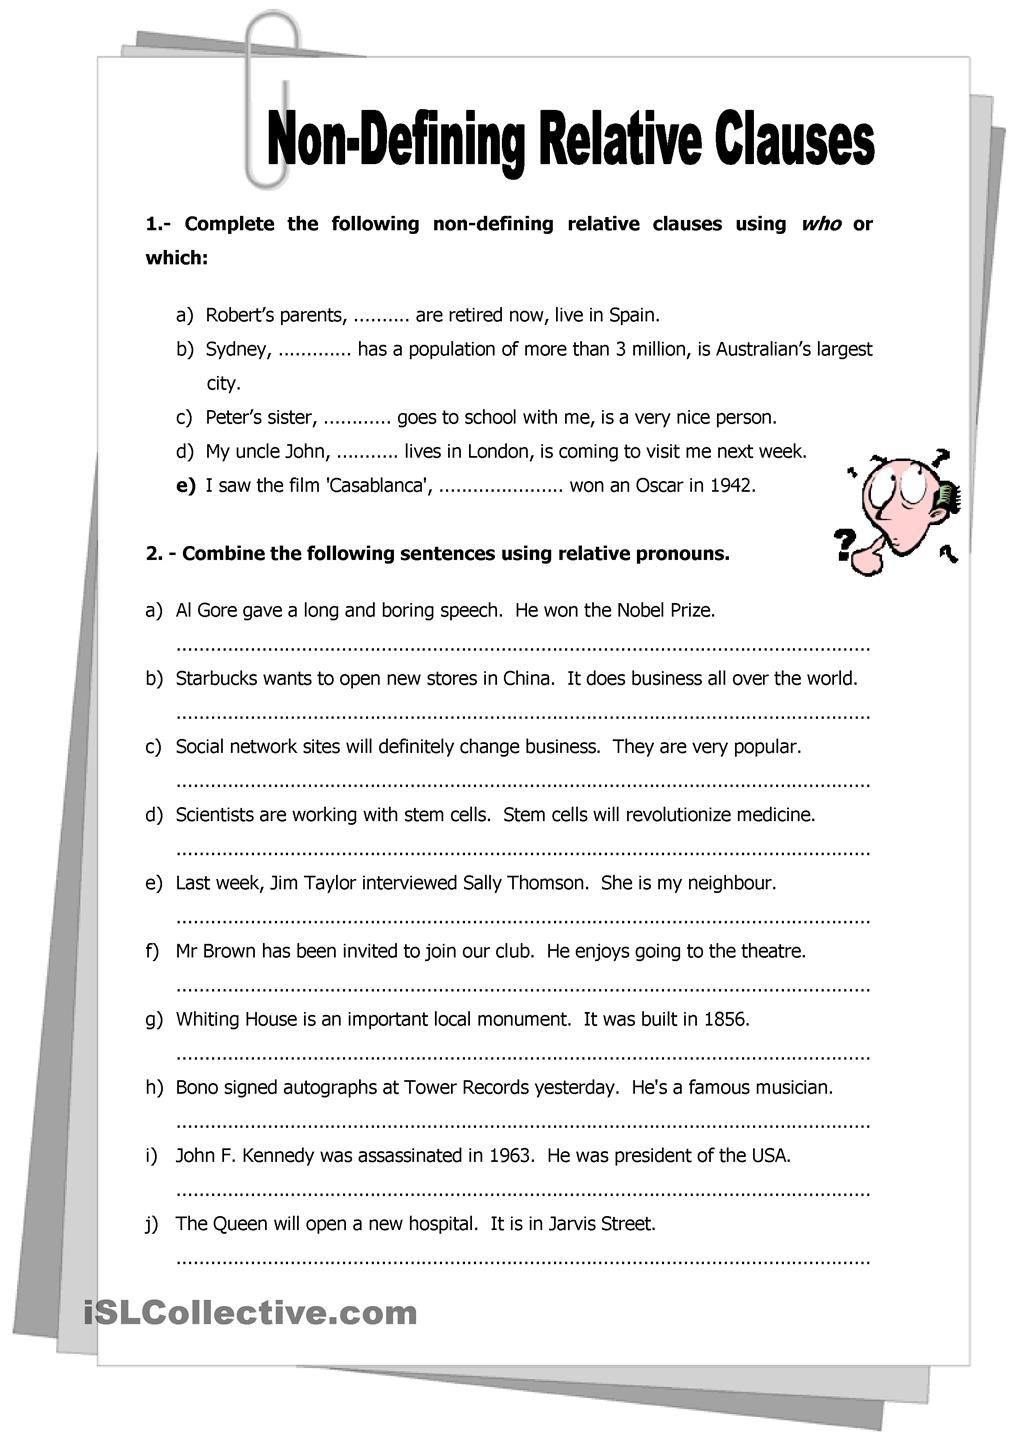 Relative Clause Worksheets Year 5 - Worksheet Pages alphabet worksheets, education, multiplication, learning, grade worksheets, and worksheets for teachers Subordinate Clause Worksheets 1440 x 1018